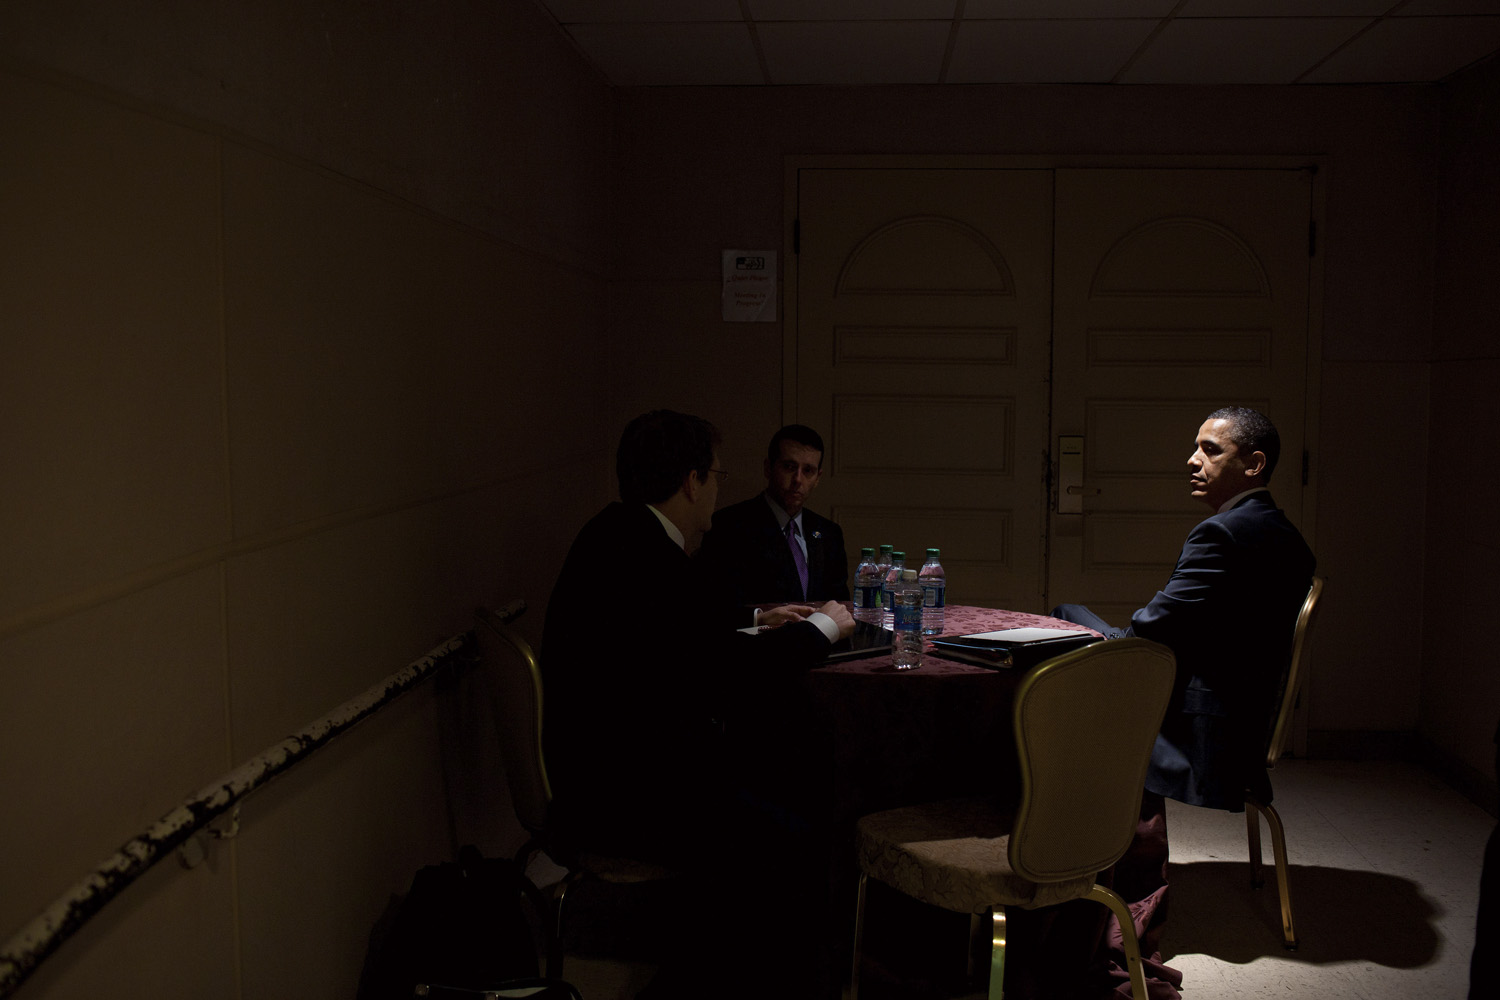 April 15, 2011. President Barack Obama meets with Press Secretary Jay Carney, left, and Senior Advisor David Plouffe, center, before an interview with Ben Feller of the Associated Press, in Chicago, Illinois.